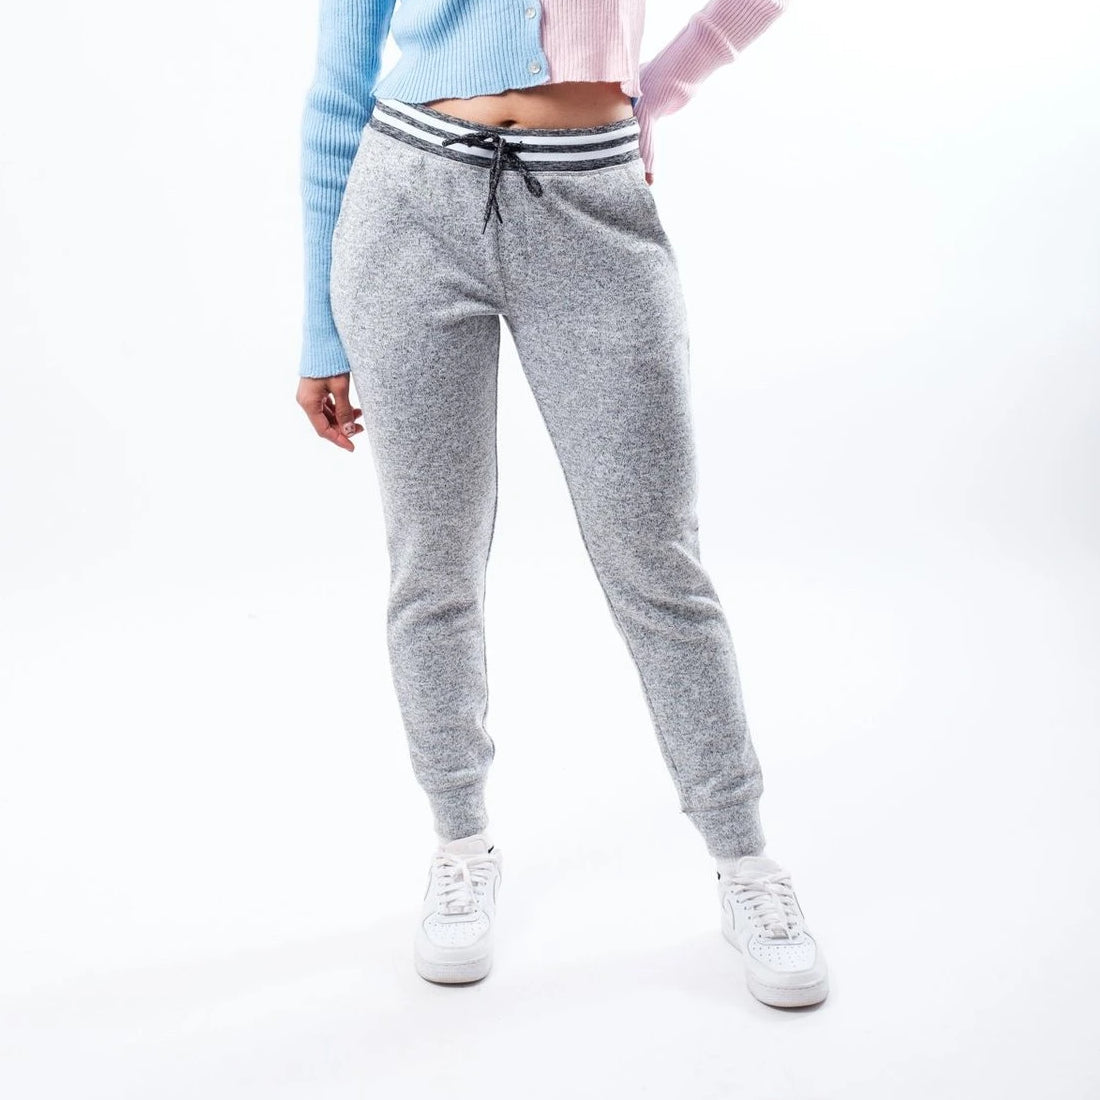 Black Friday Women's Joggers Sale 2020 by Brooklyn Cloth